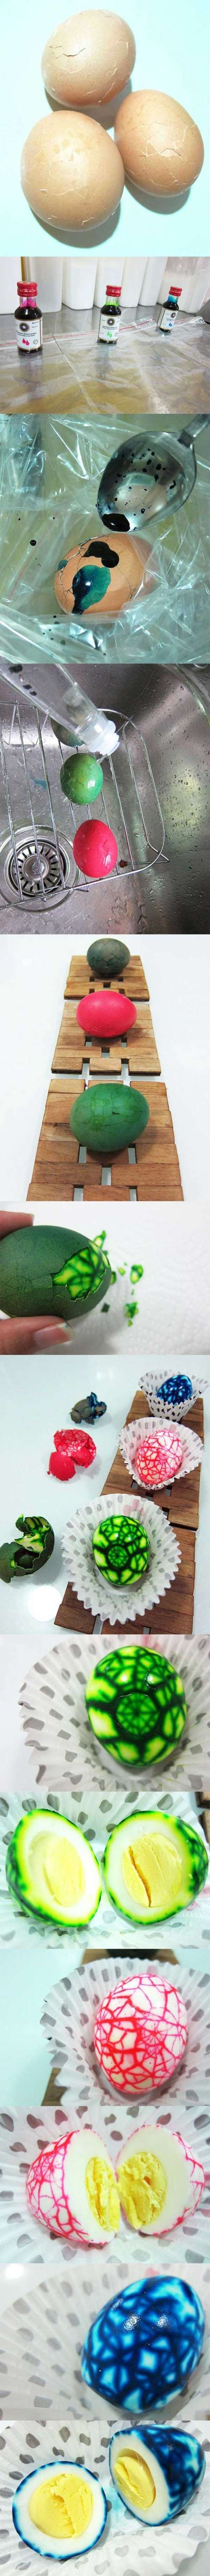 How to make #Easter eggs